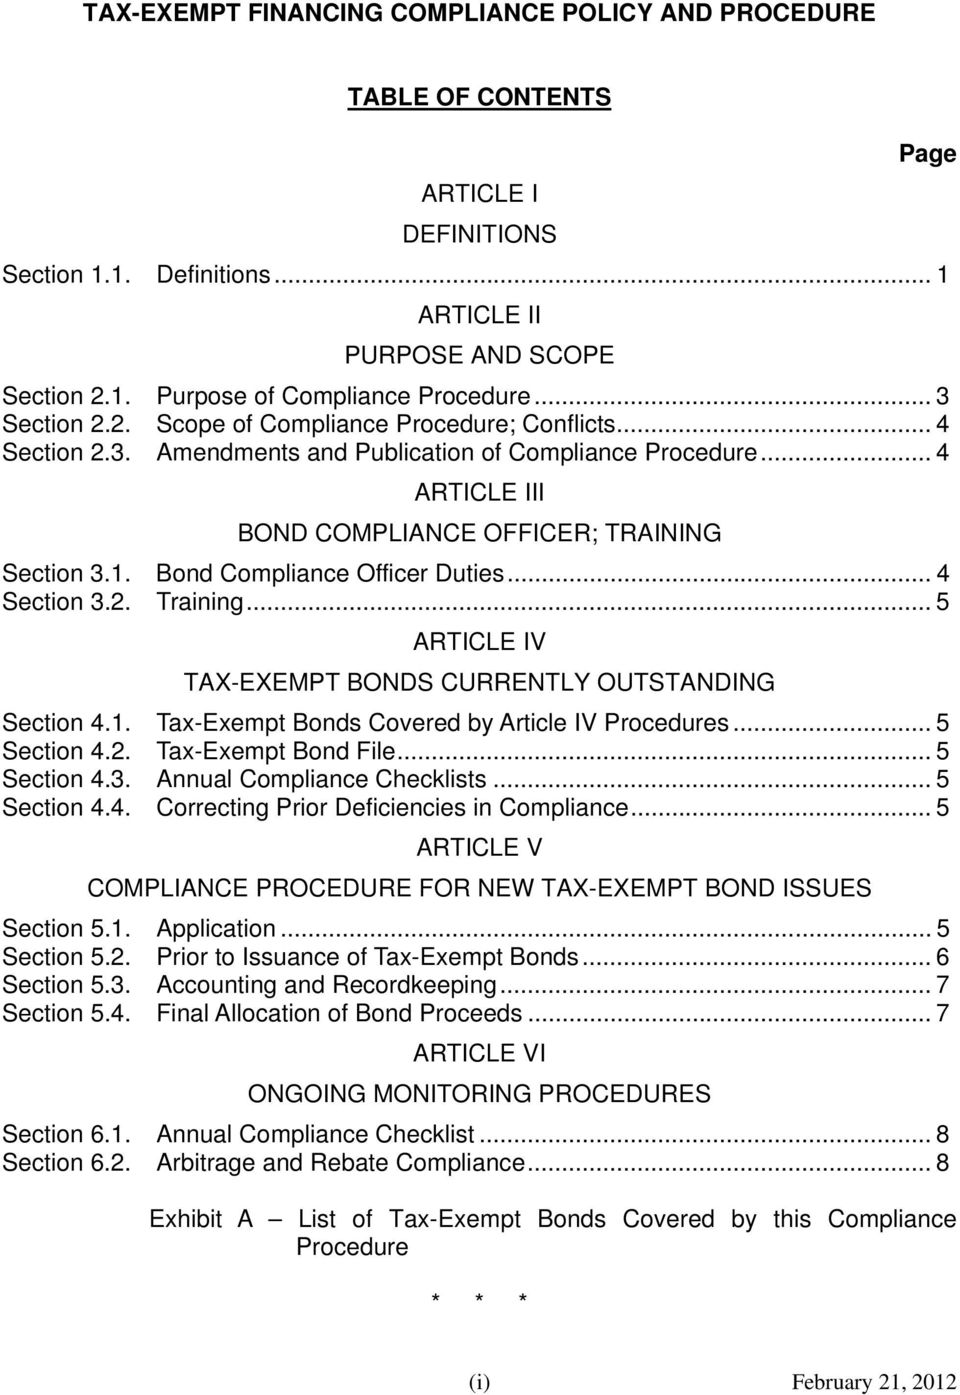 Bond Compliance Officer Duties... 4 Section 3.2. Training... 5 ARTICLE IV TAX-EXEMPT BONDS CURRENTLY OUTSTANDING Section 4.1. Tax-Exempt Bonds Covered by Article IV Procedures... 5 Section 4.2. Tax-Exempt Bond File.